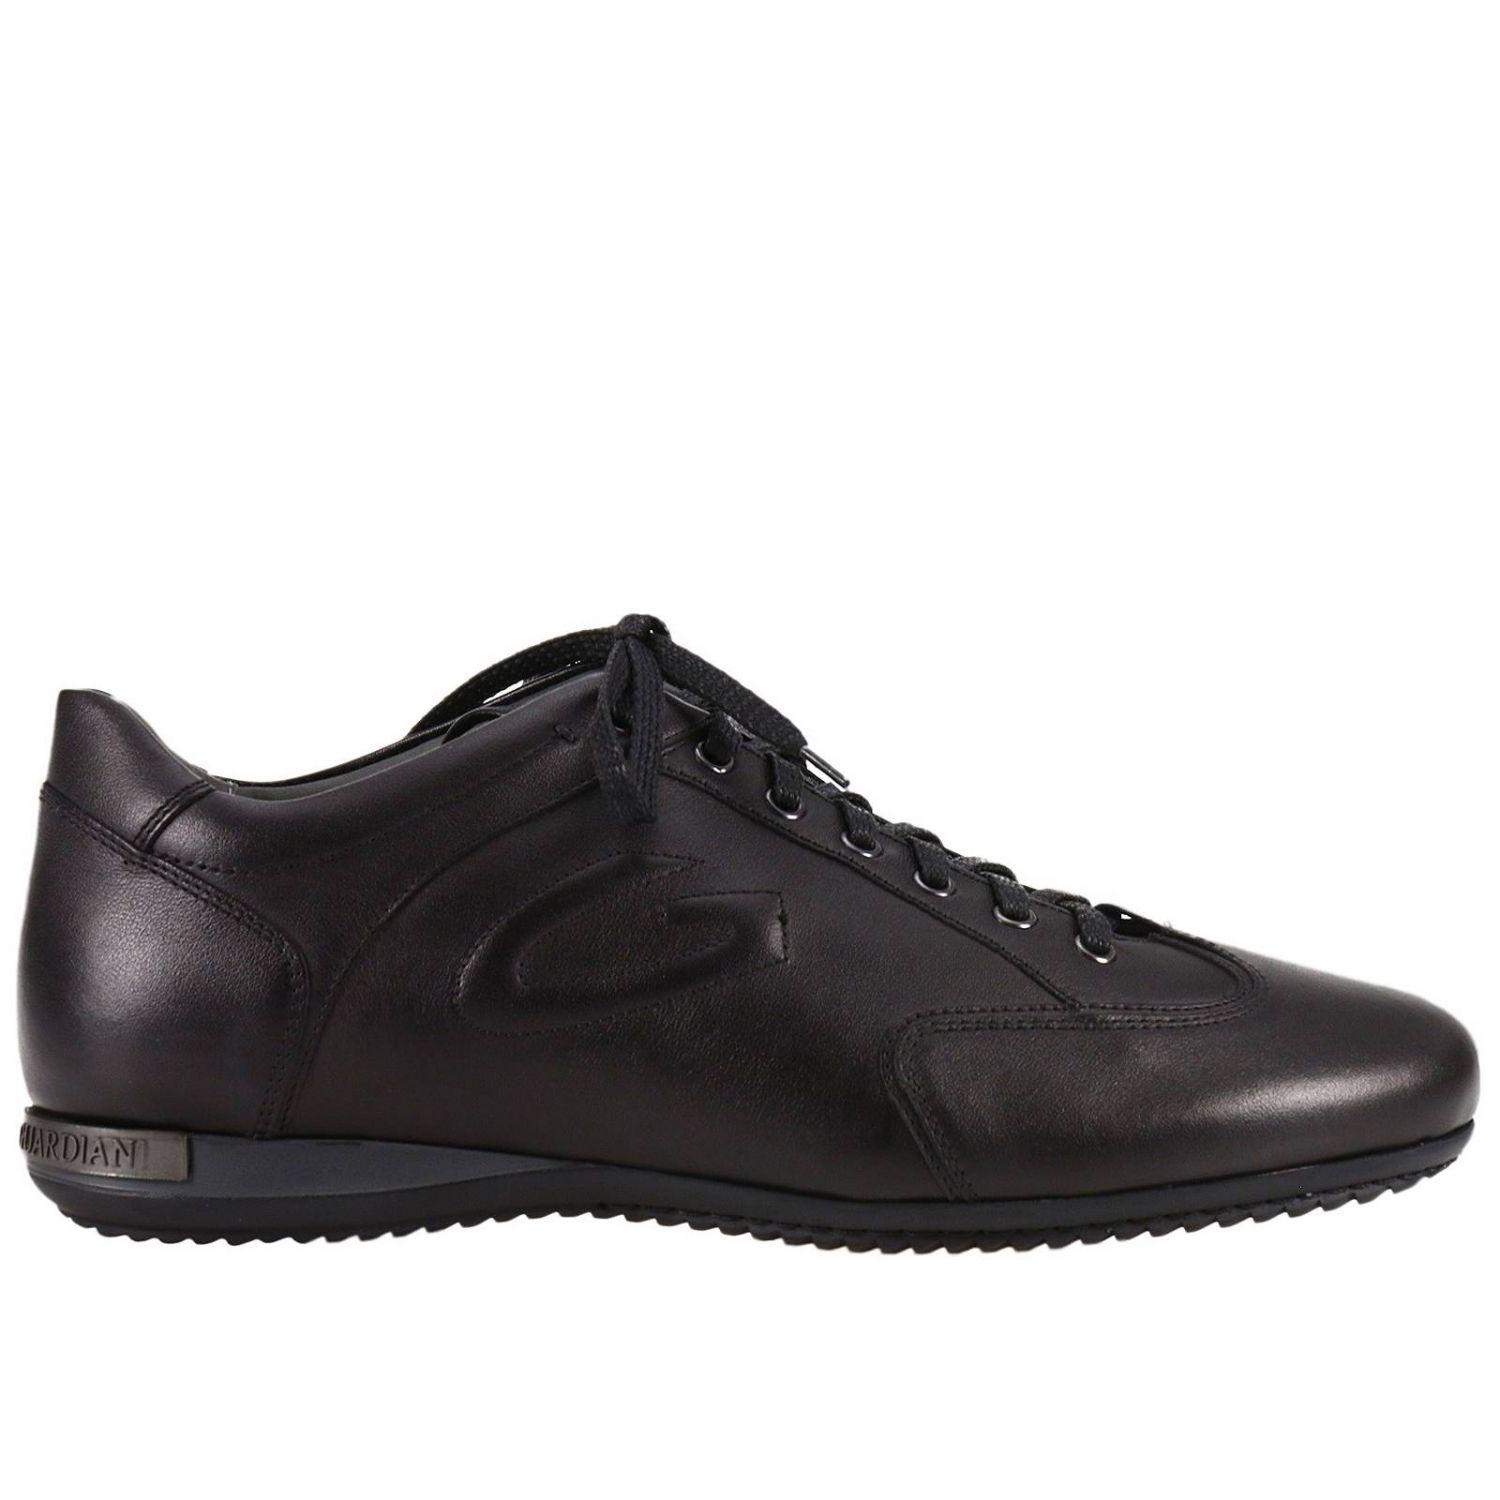 Lyst - Alberto Guardiani Lace Up Shoes Adler Sneaker Suede